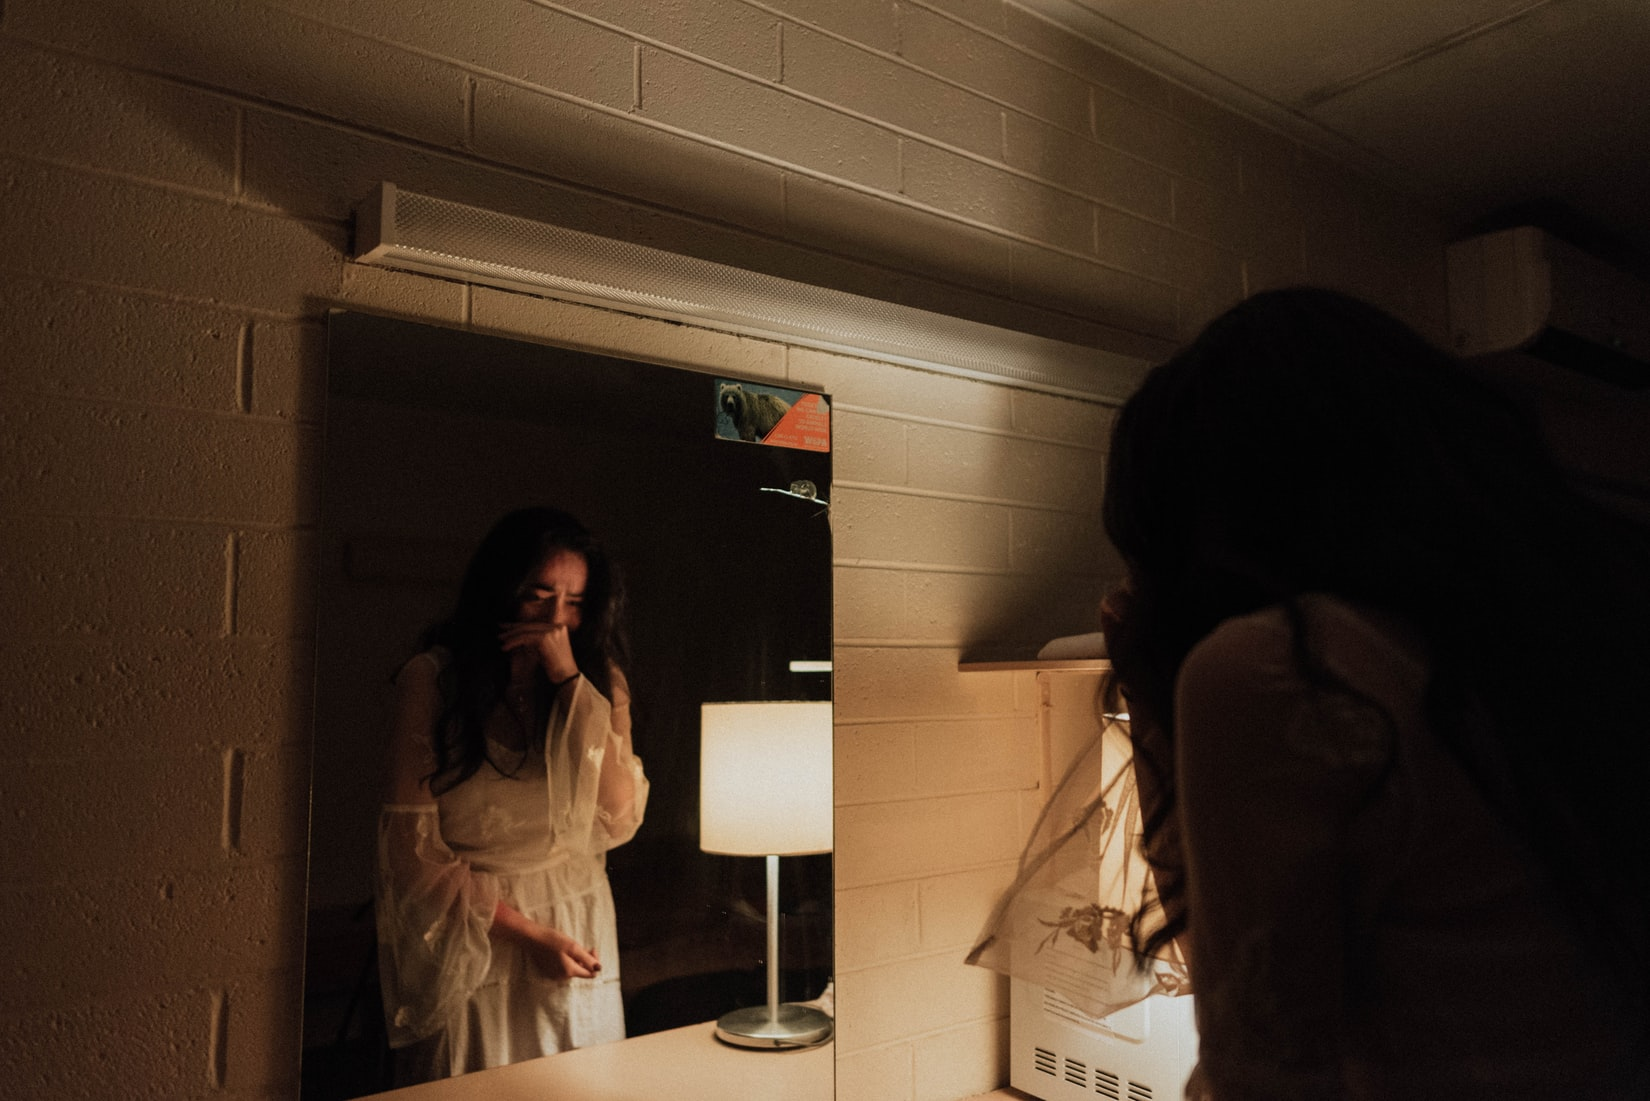 Brunette woman in white robe crying in front of mirror